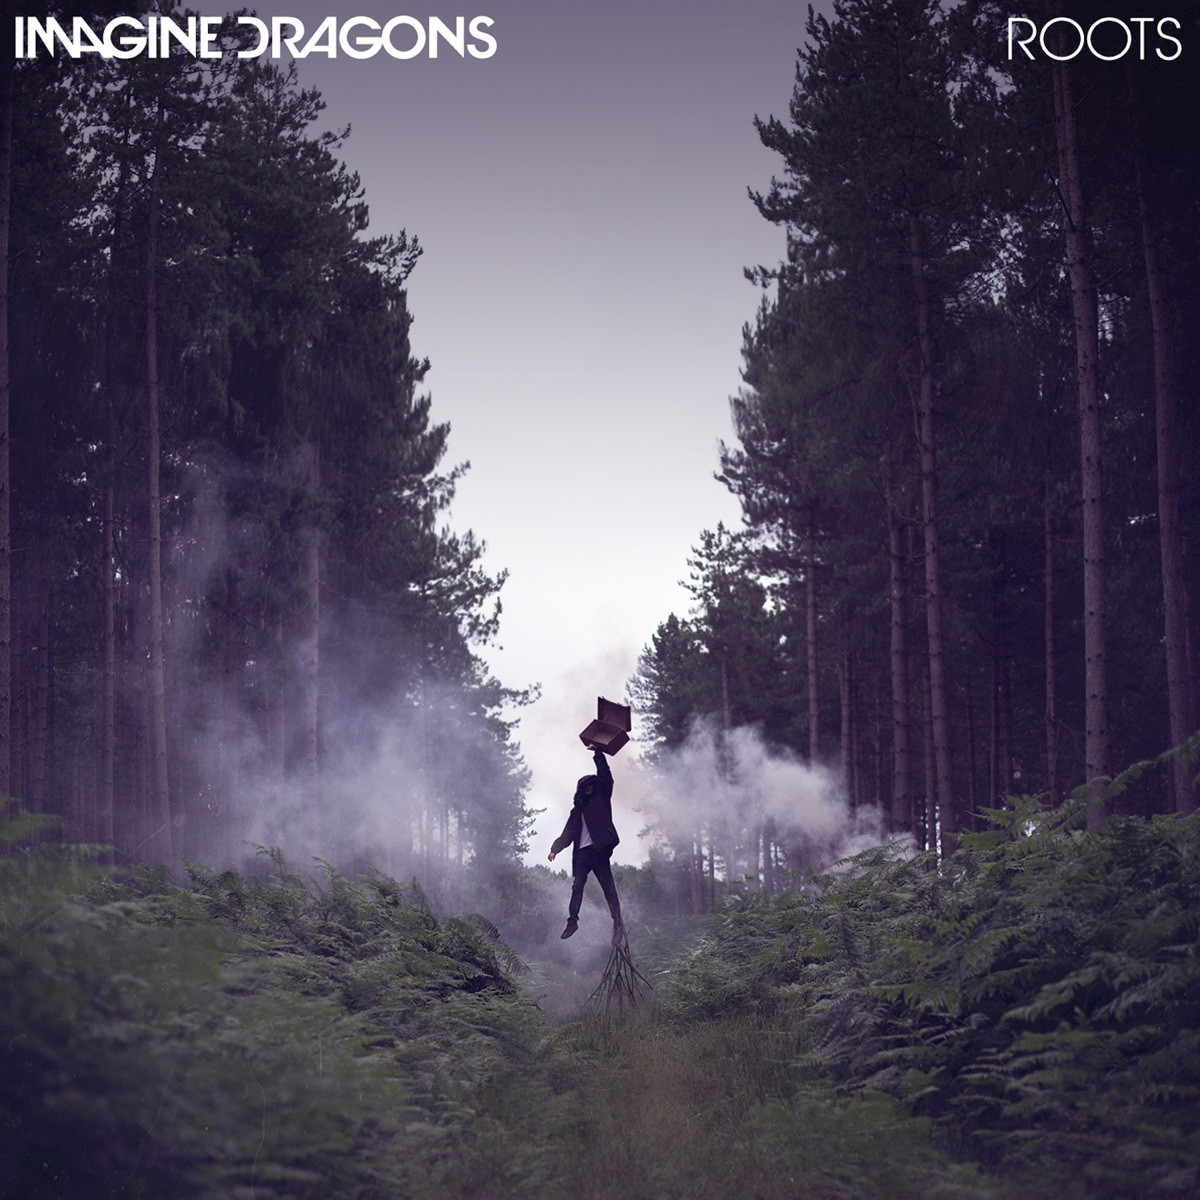 Roots - Single Imagine Dragons CD cover